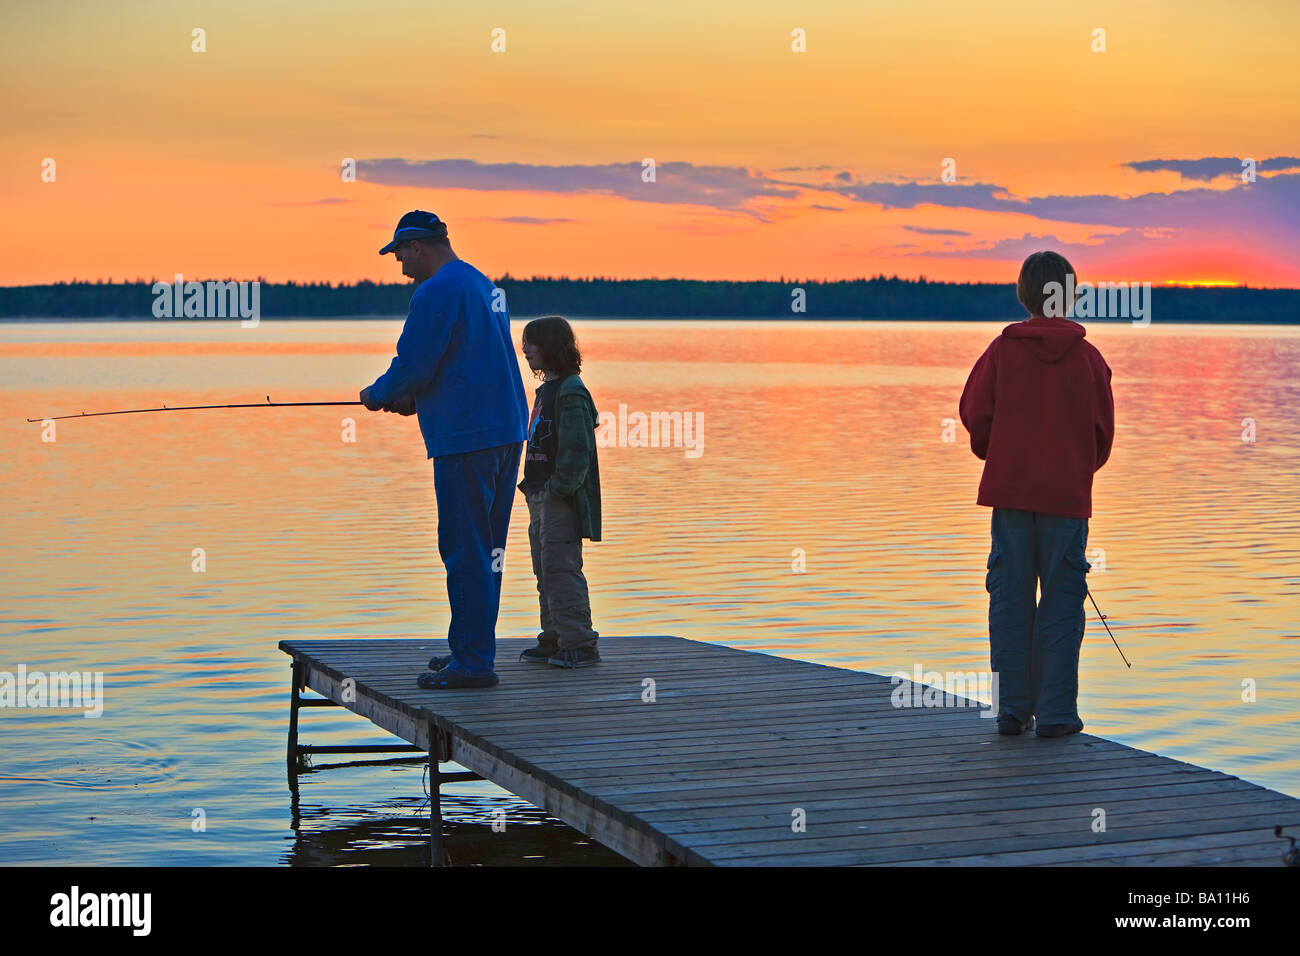 A Father with his two sons fishing at the end of a wharf on Lake Audy at sunset,Riding Mountain National Park,Manitoba,Canada. - Stock Image